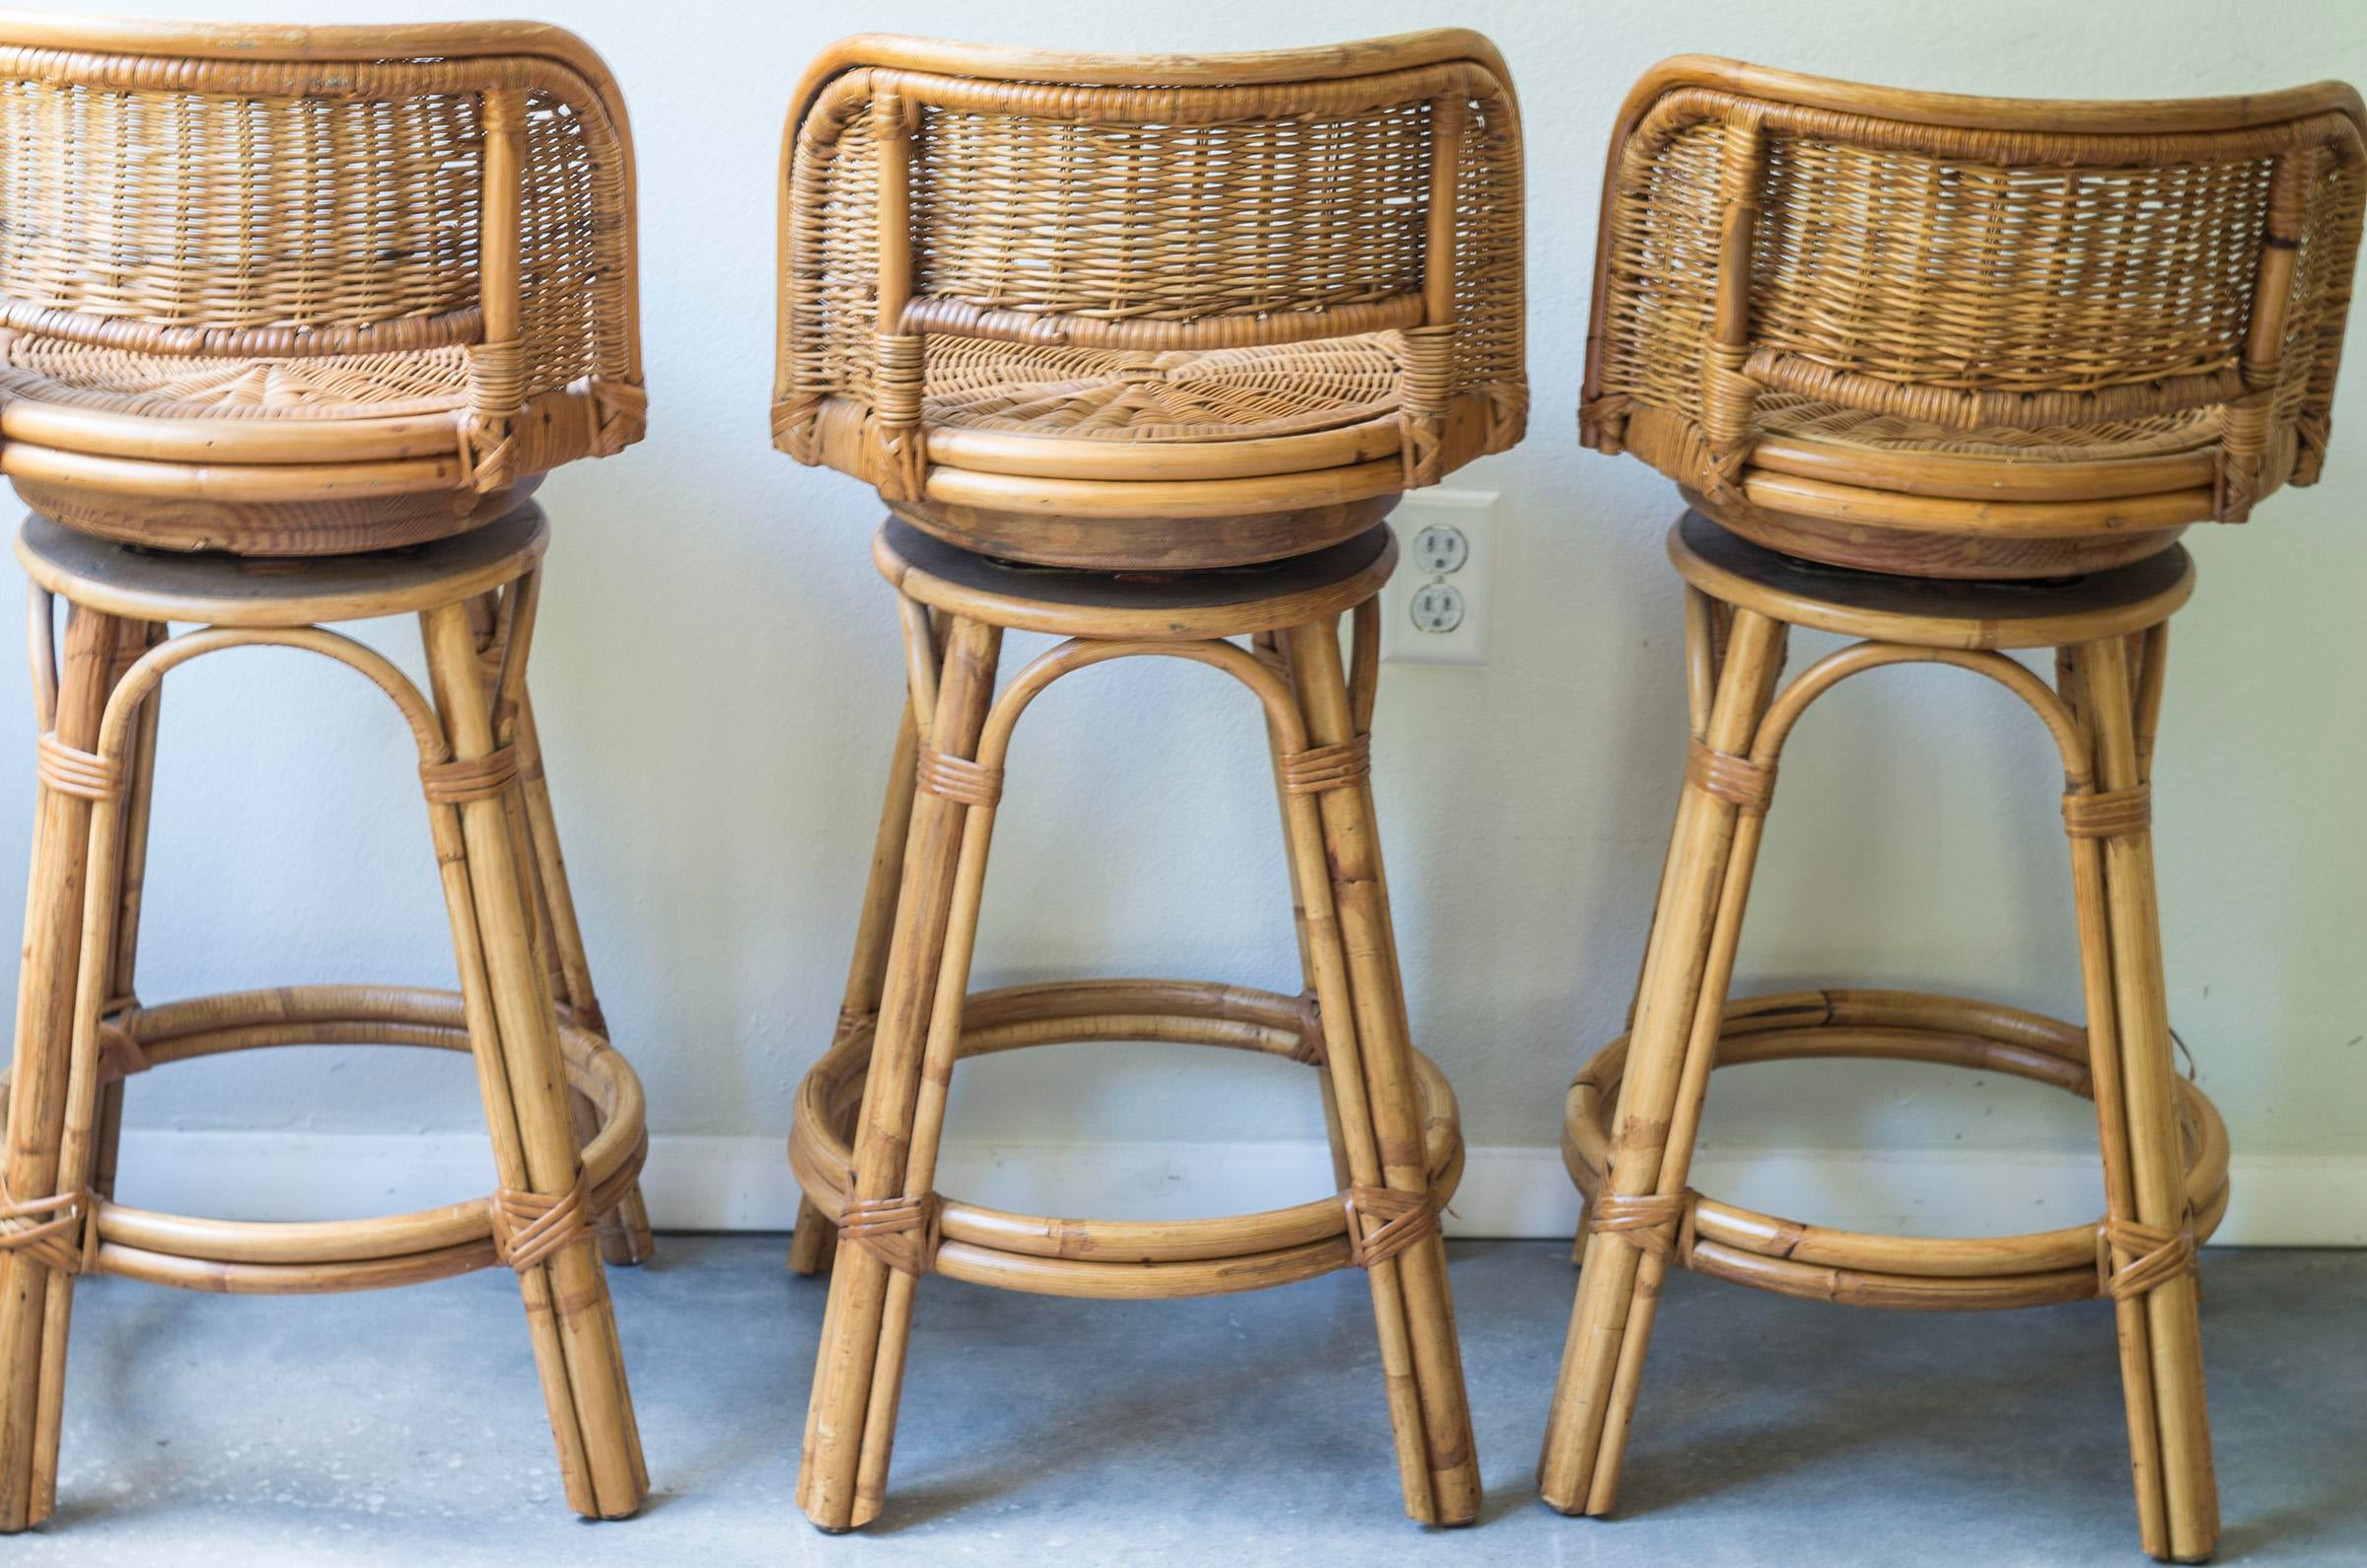 Contemporary Vintage Mid Century Rattan Bamboo Tiki Bar Stools   Set Of 3  For Sale